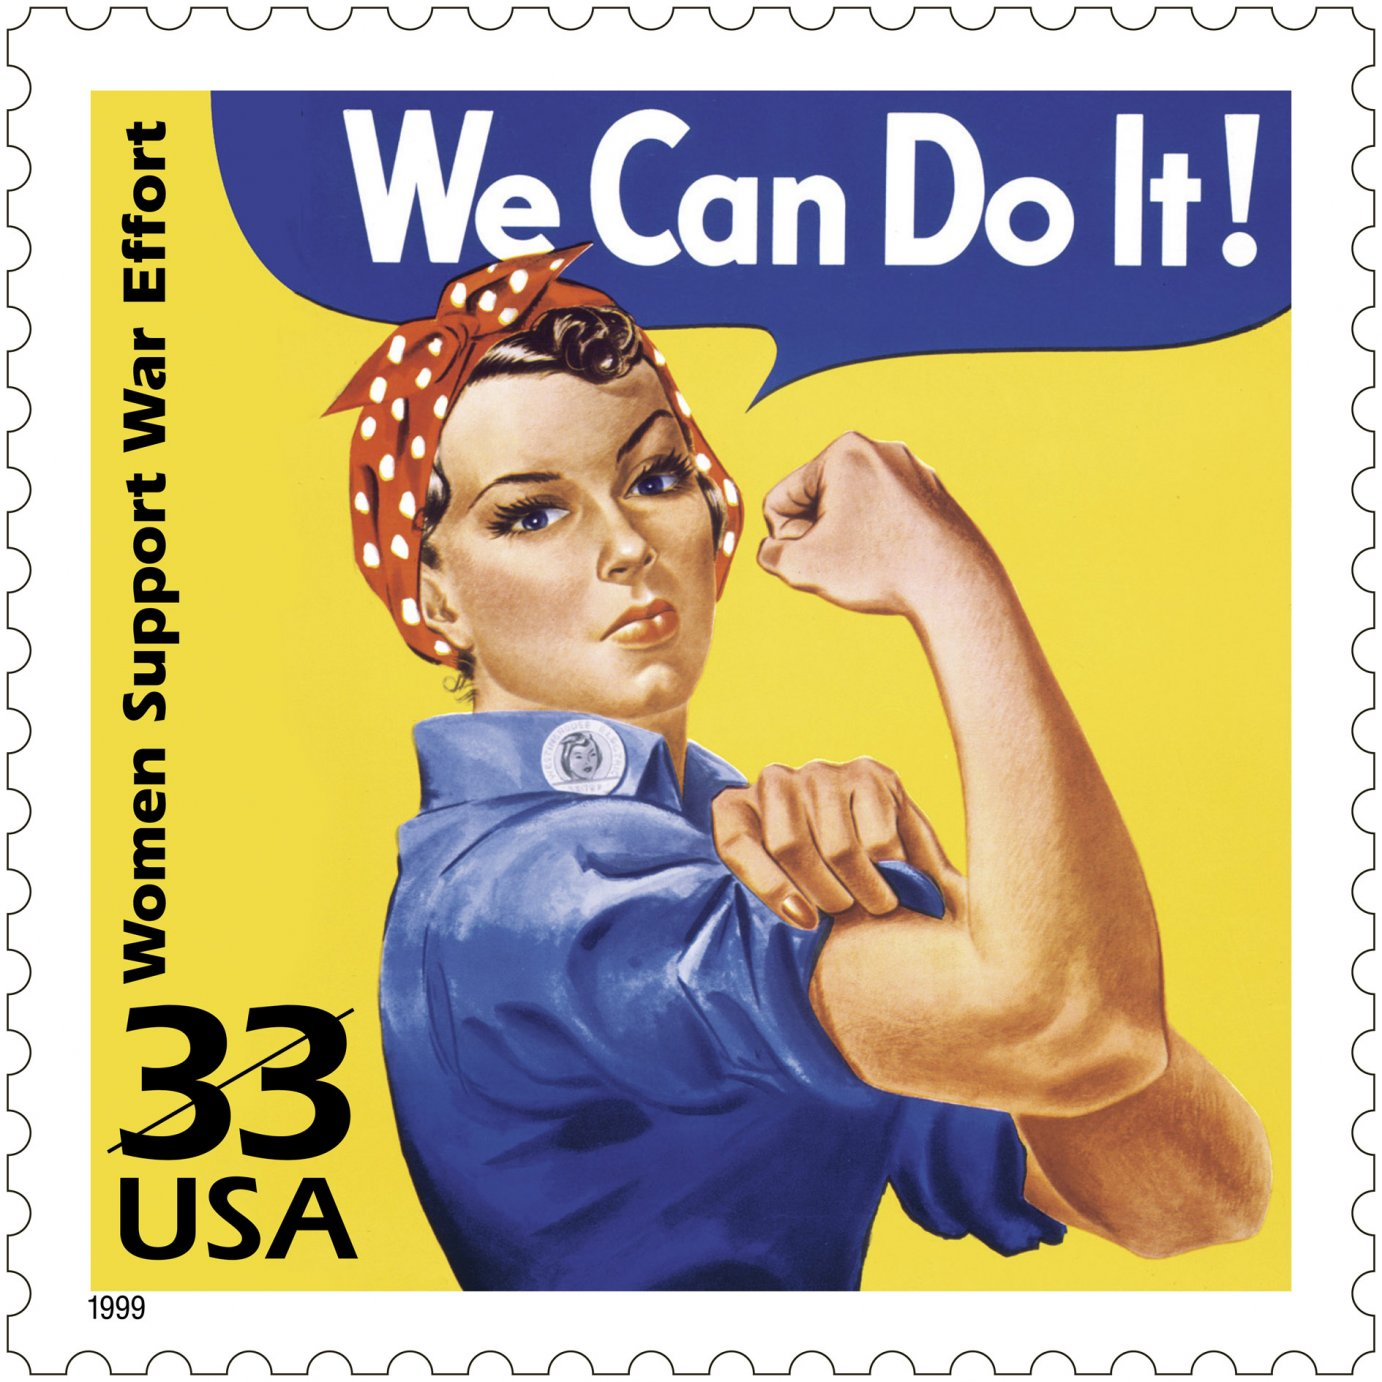 """U.S. stamp depicting """"Rosie the Riveter,"""" a symbol of the female workforce during World War II."""